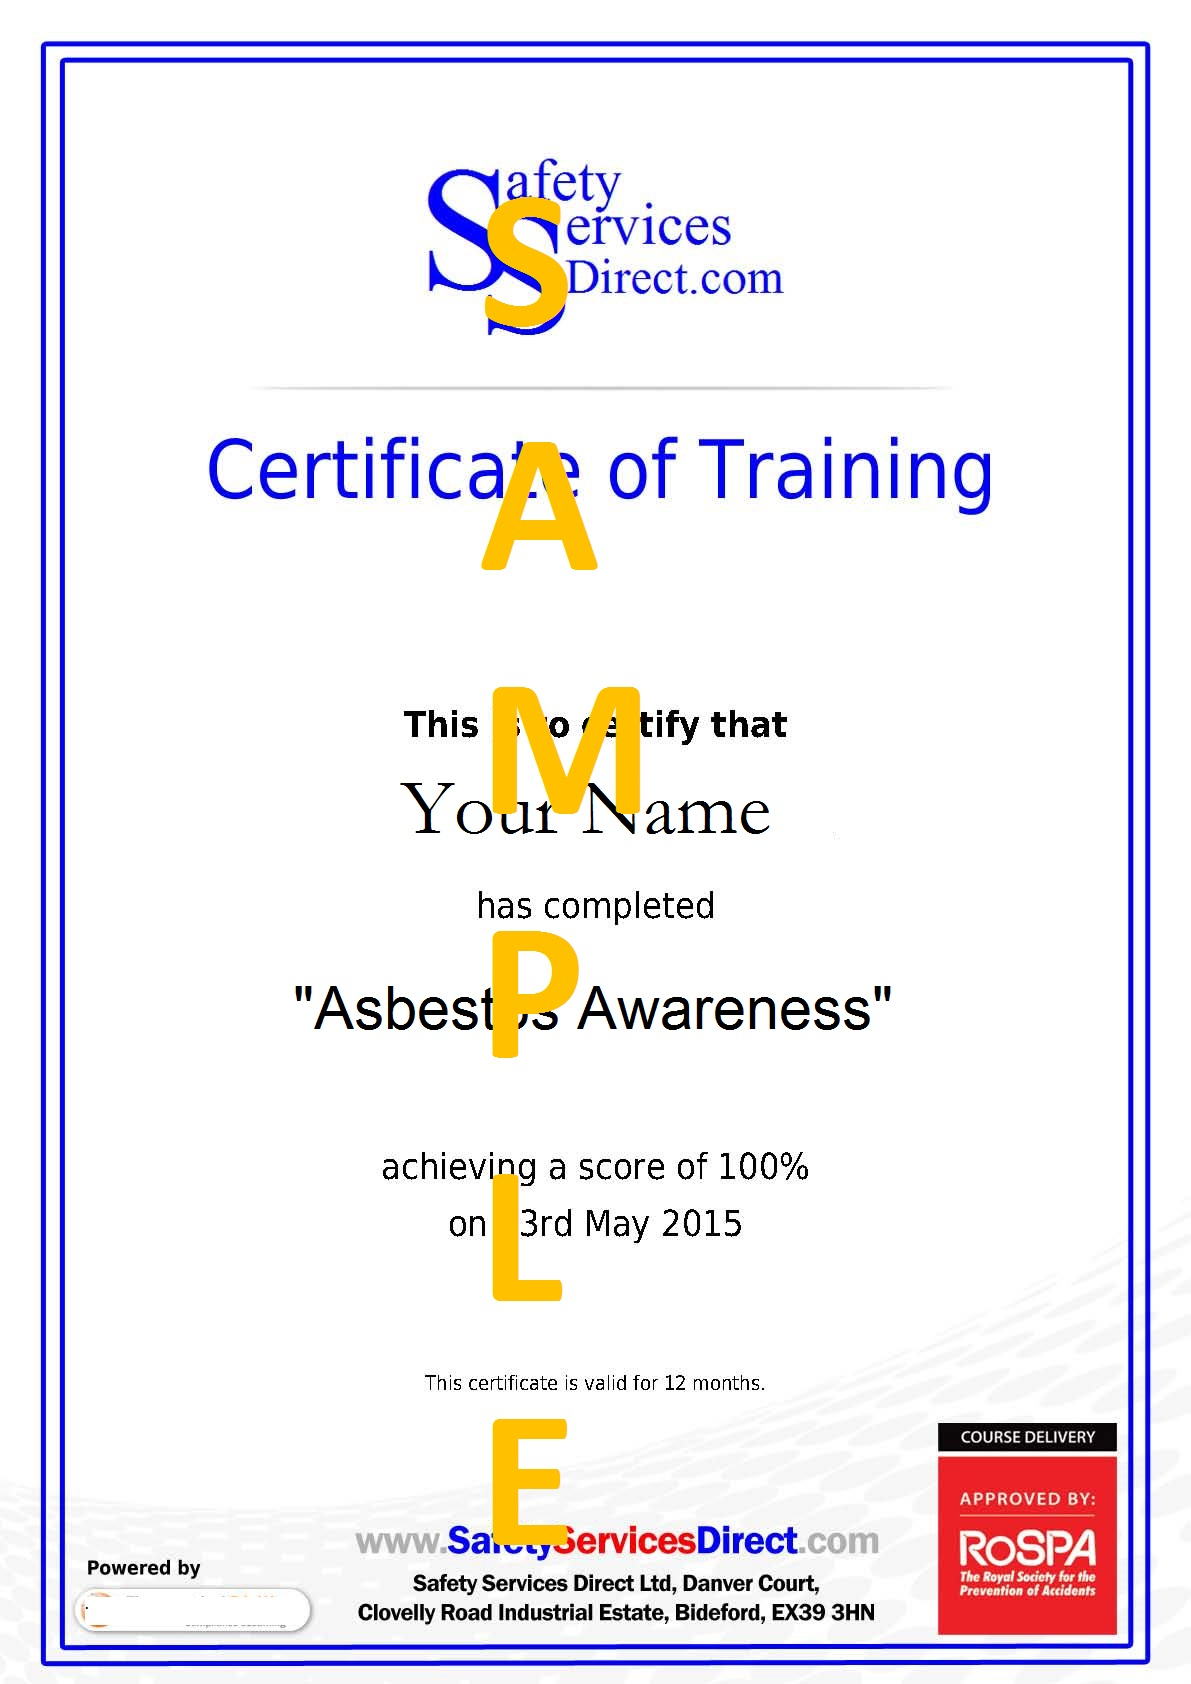 safety certificate template - Etame.mibawa.co